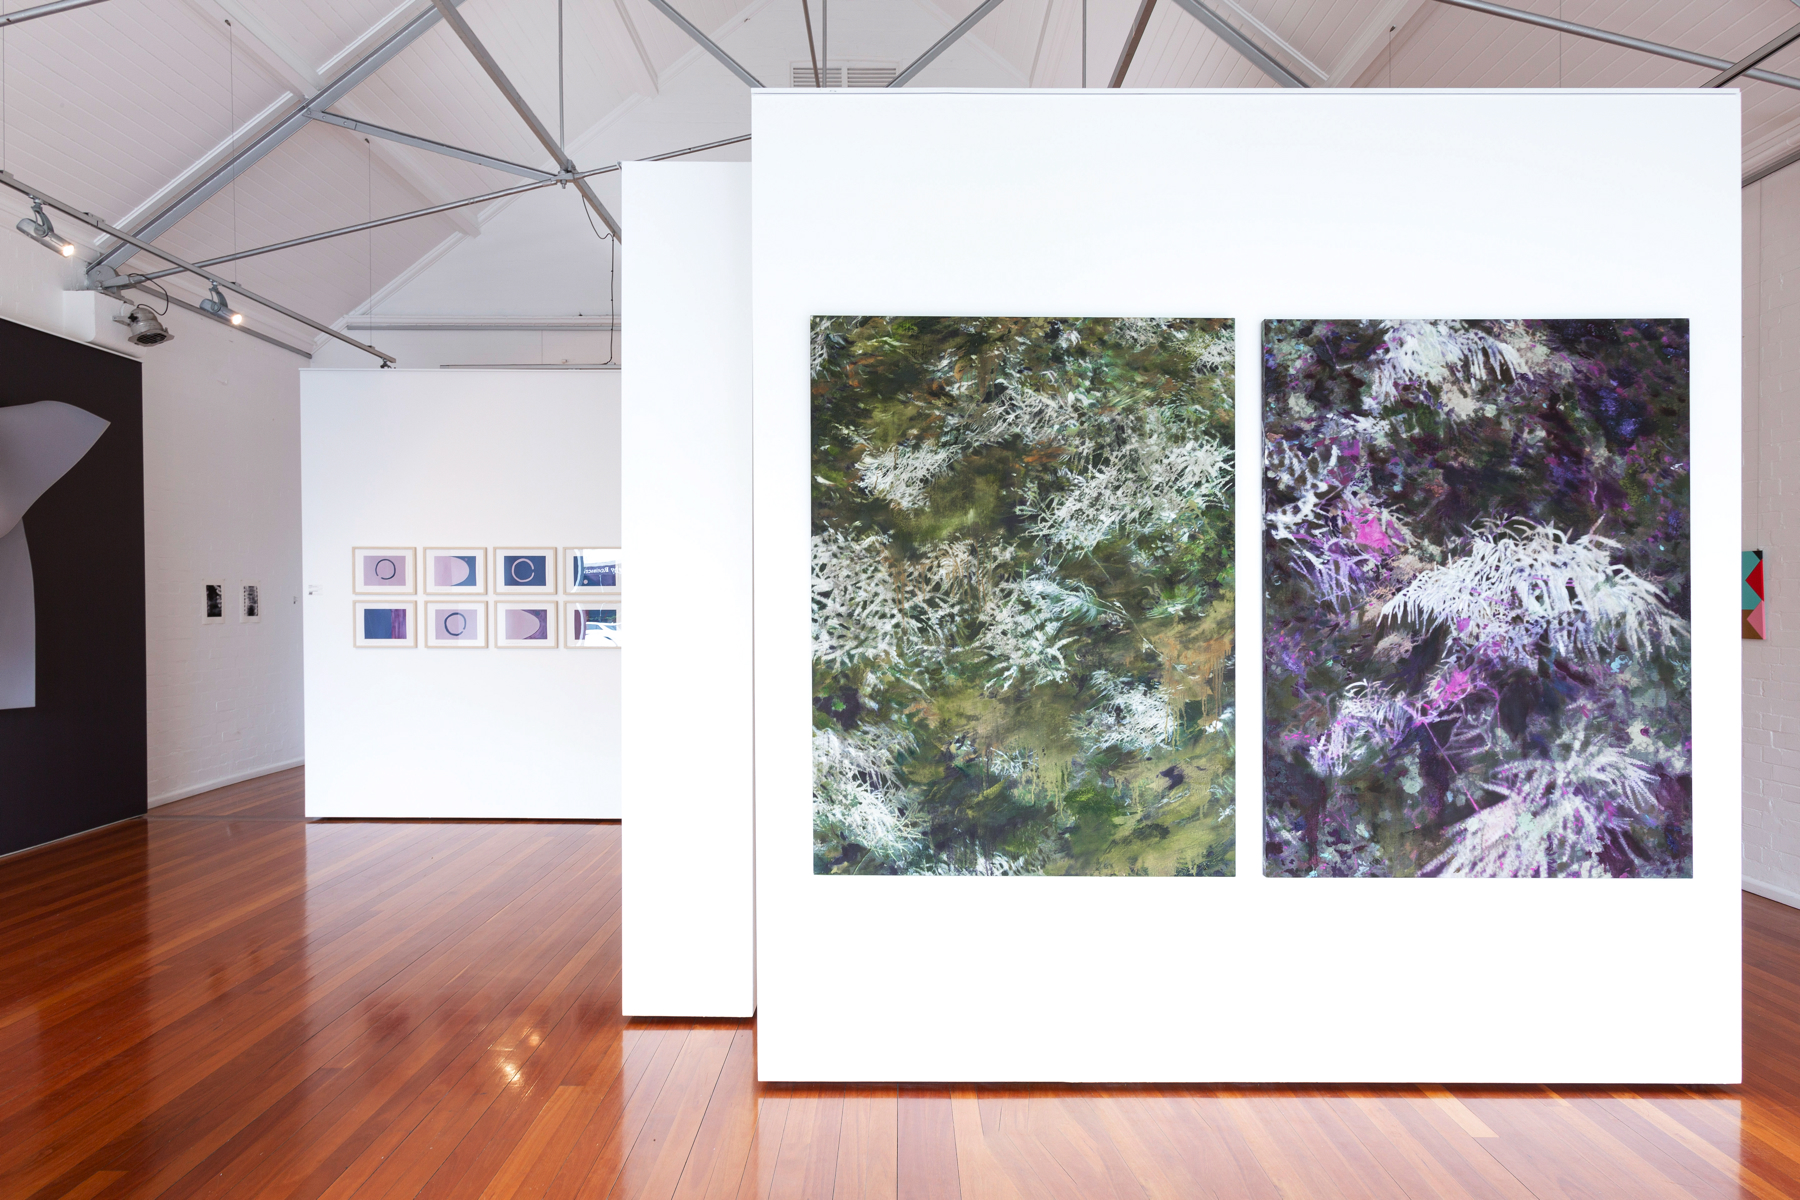 Installation photography by Jessica Maurer.